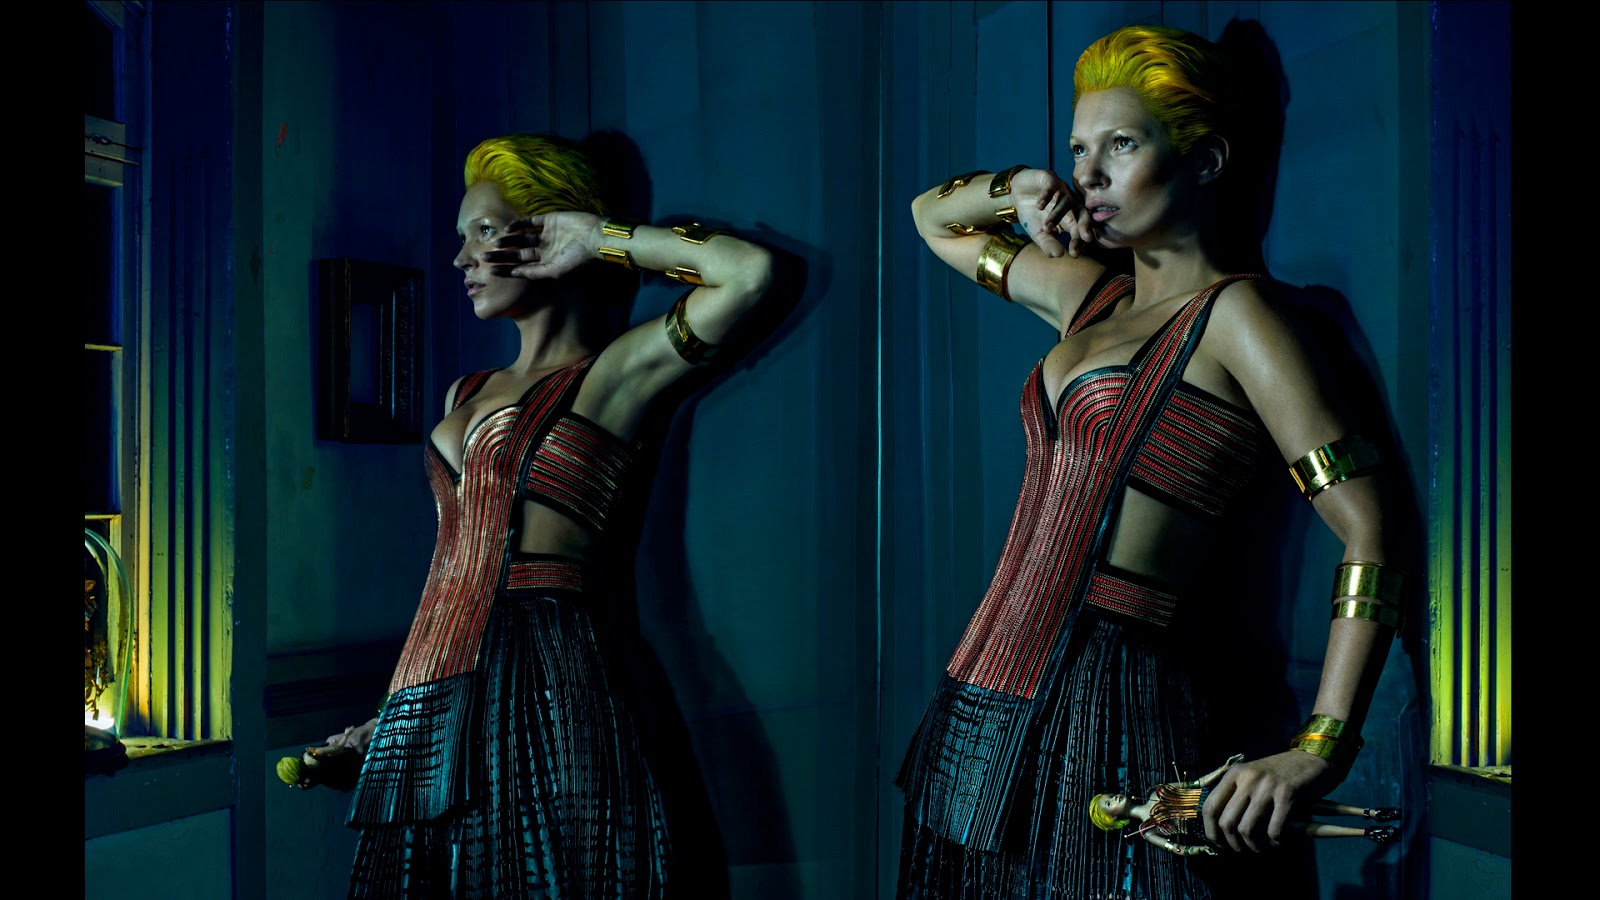 Kate Moss Fronts Alexander McQueen SS14 Campaign advise